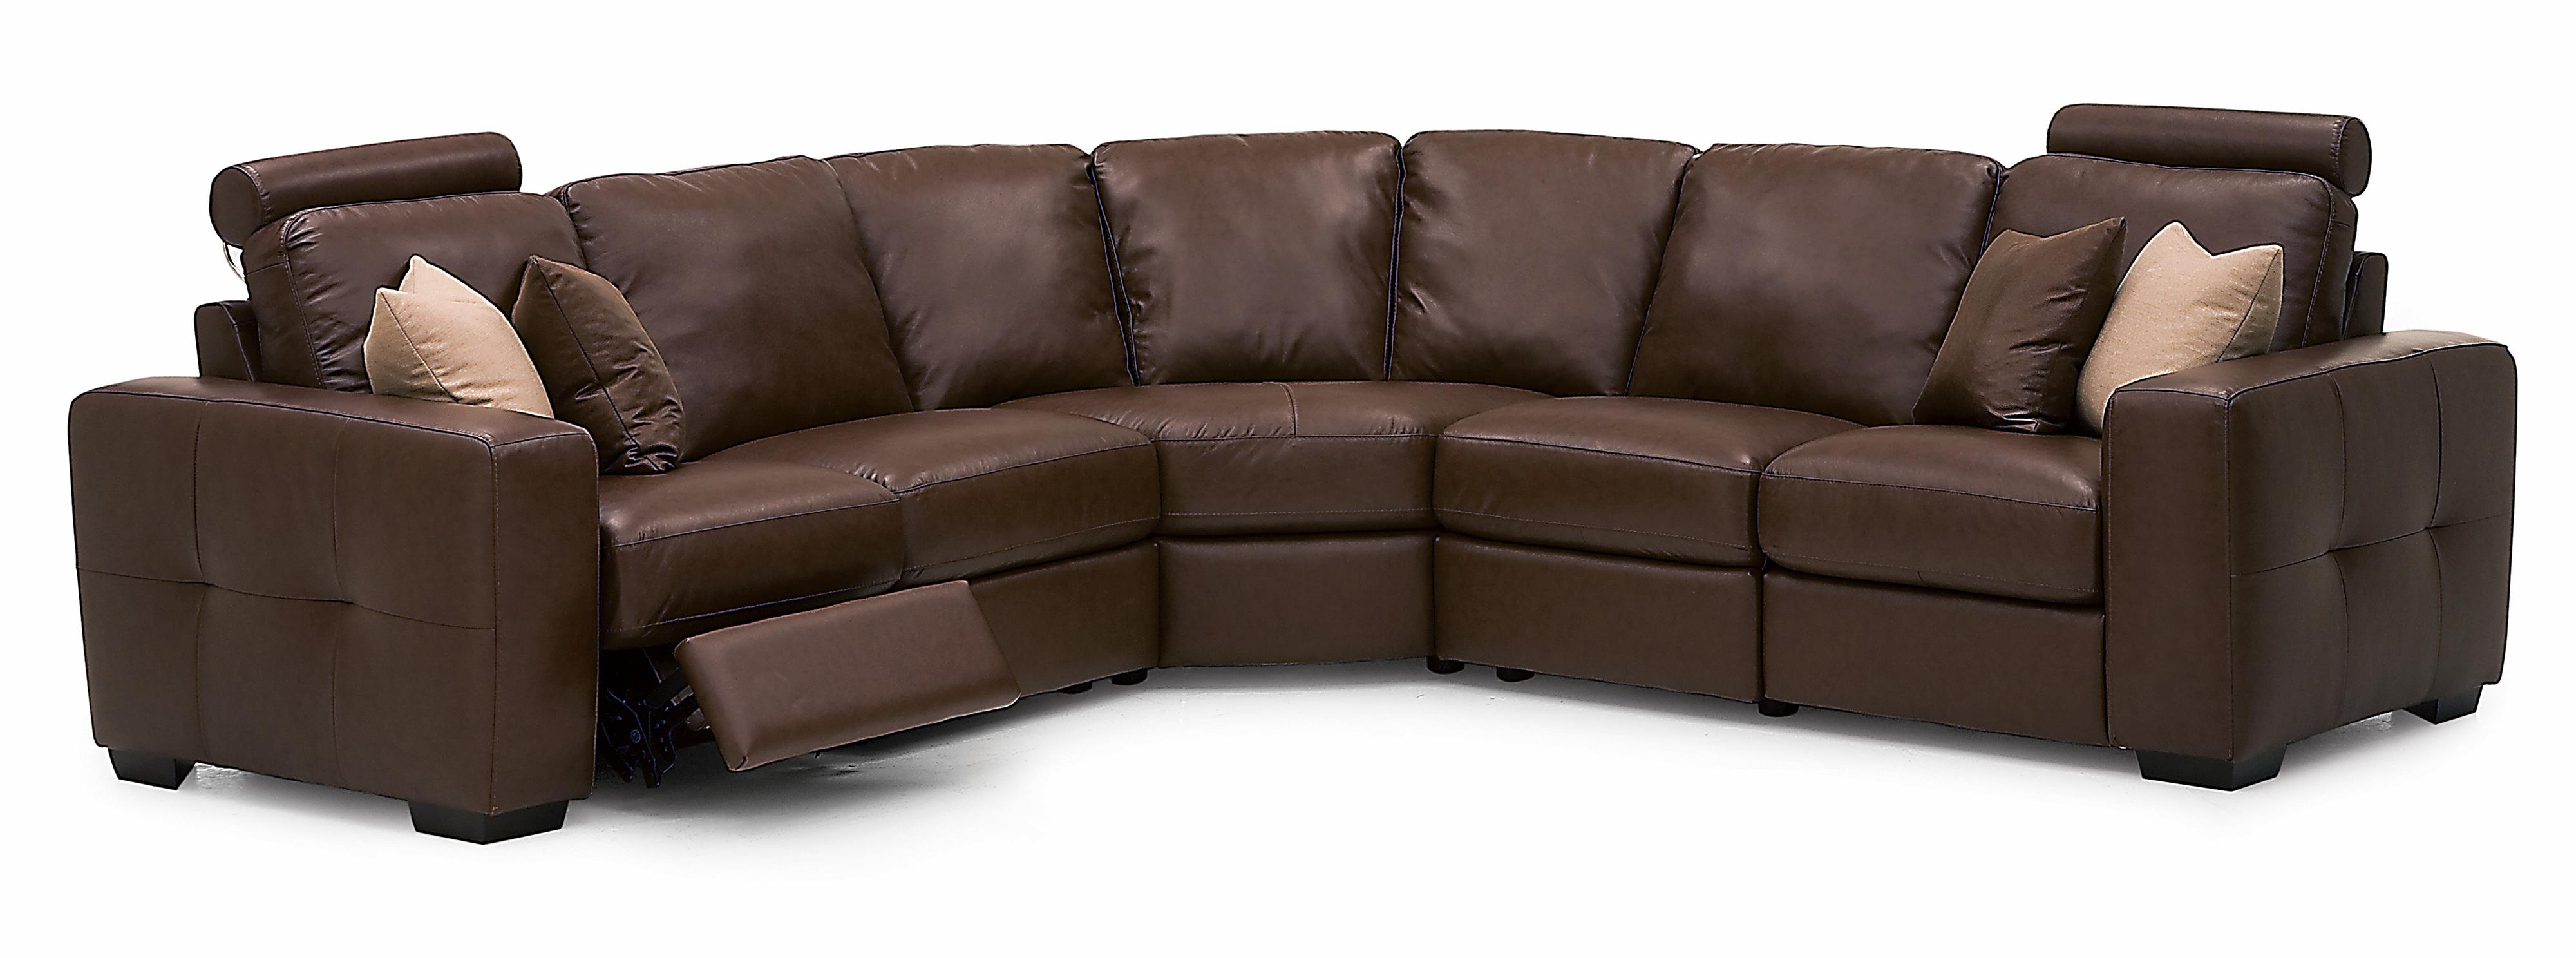 pause modern reclining sectional sofa by palliser queen size bed ikea push contemporary power dual